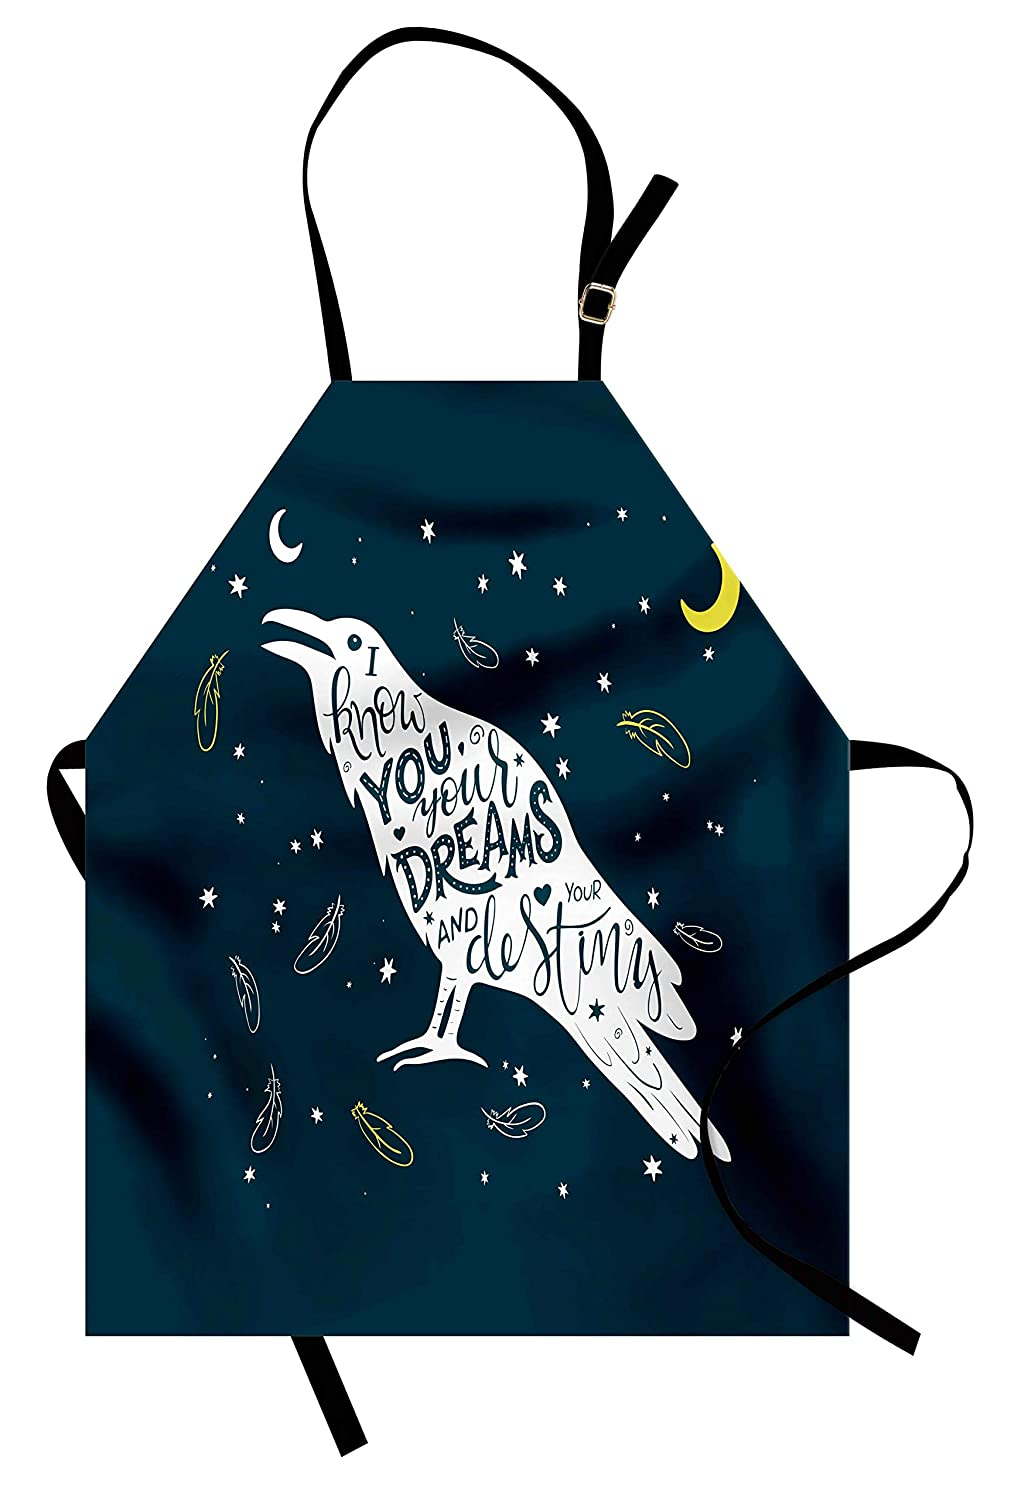 Ravenエプロンby printawe、ホワイト鳥シルエットwith Inspirational Quote on Night Sky Backdrop、ユニセックスキッチン調節可能なネックよだれかけエプロンfor Cooking Bakingガーデニング、ダークブルーイエローとホワイト   B07BFCL131